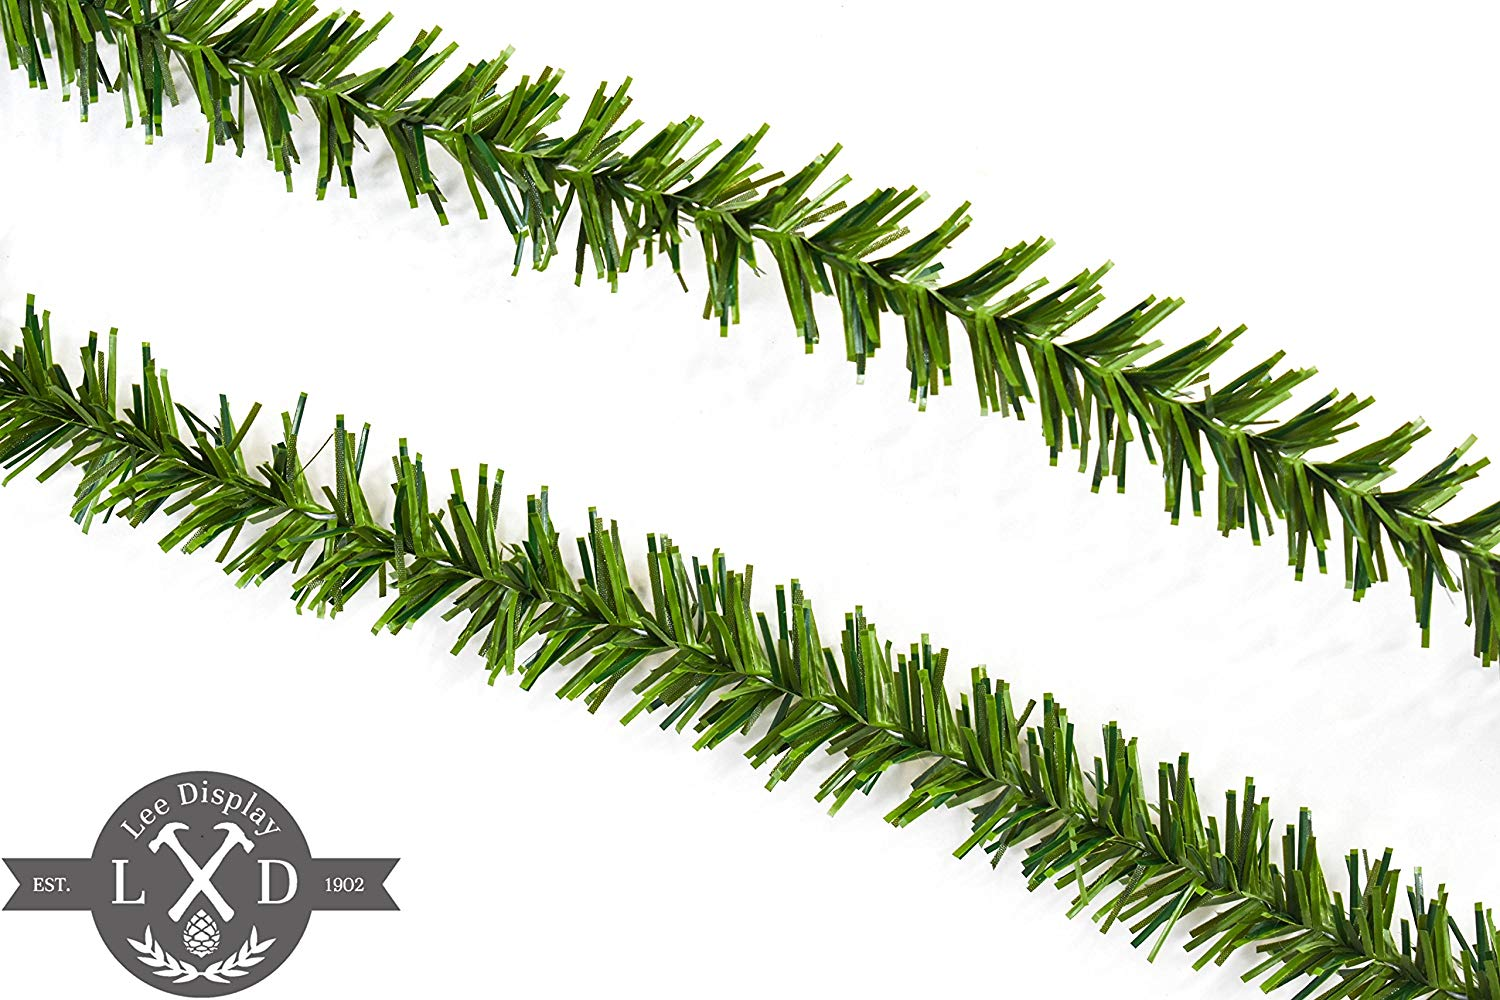 25ft alpine green tinsel garland alpine green tinsel garland 3in width tinsel garlands for christmas decorations - Tinsel Christmas Decorations